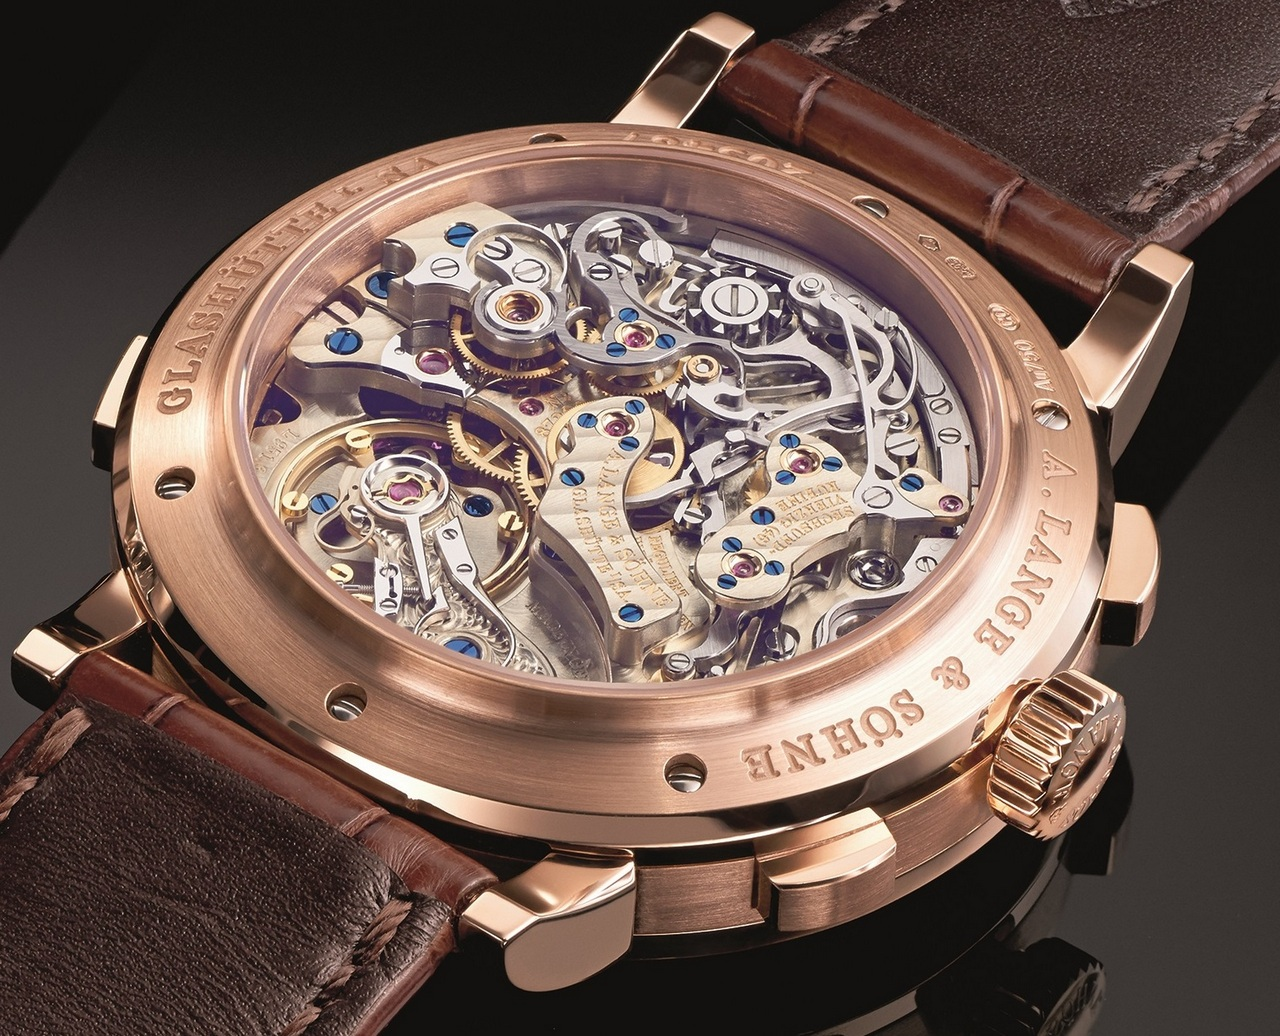 sihh-2015-a-lange-sohne-datograph-updown-oro-rosa-cronografo-flyback_0-100_4